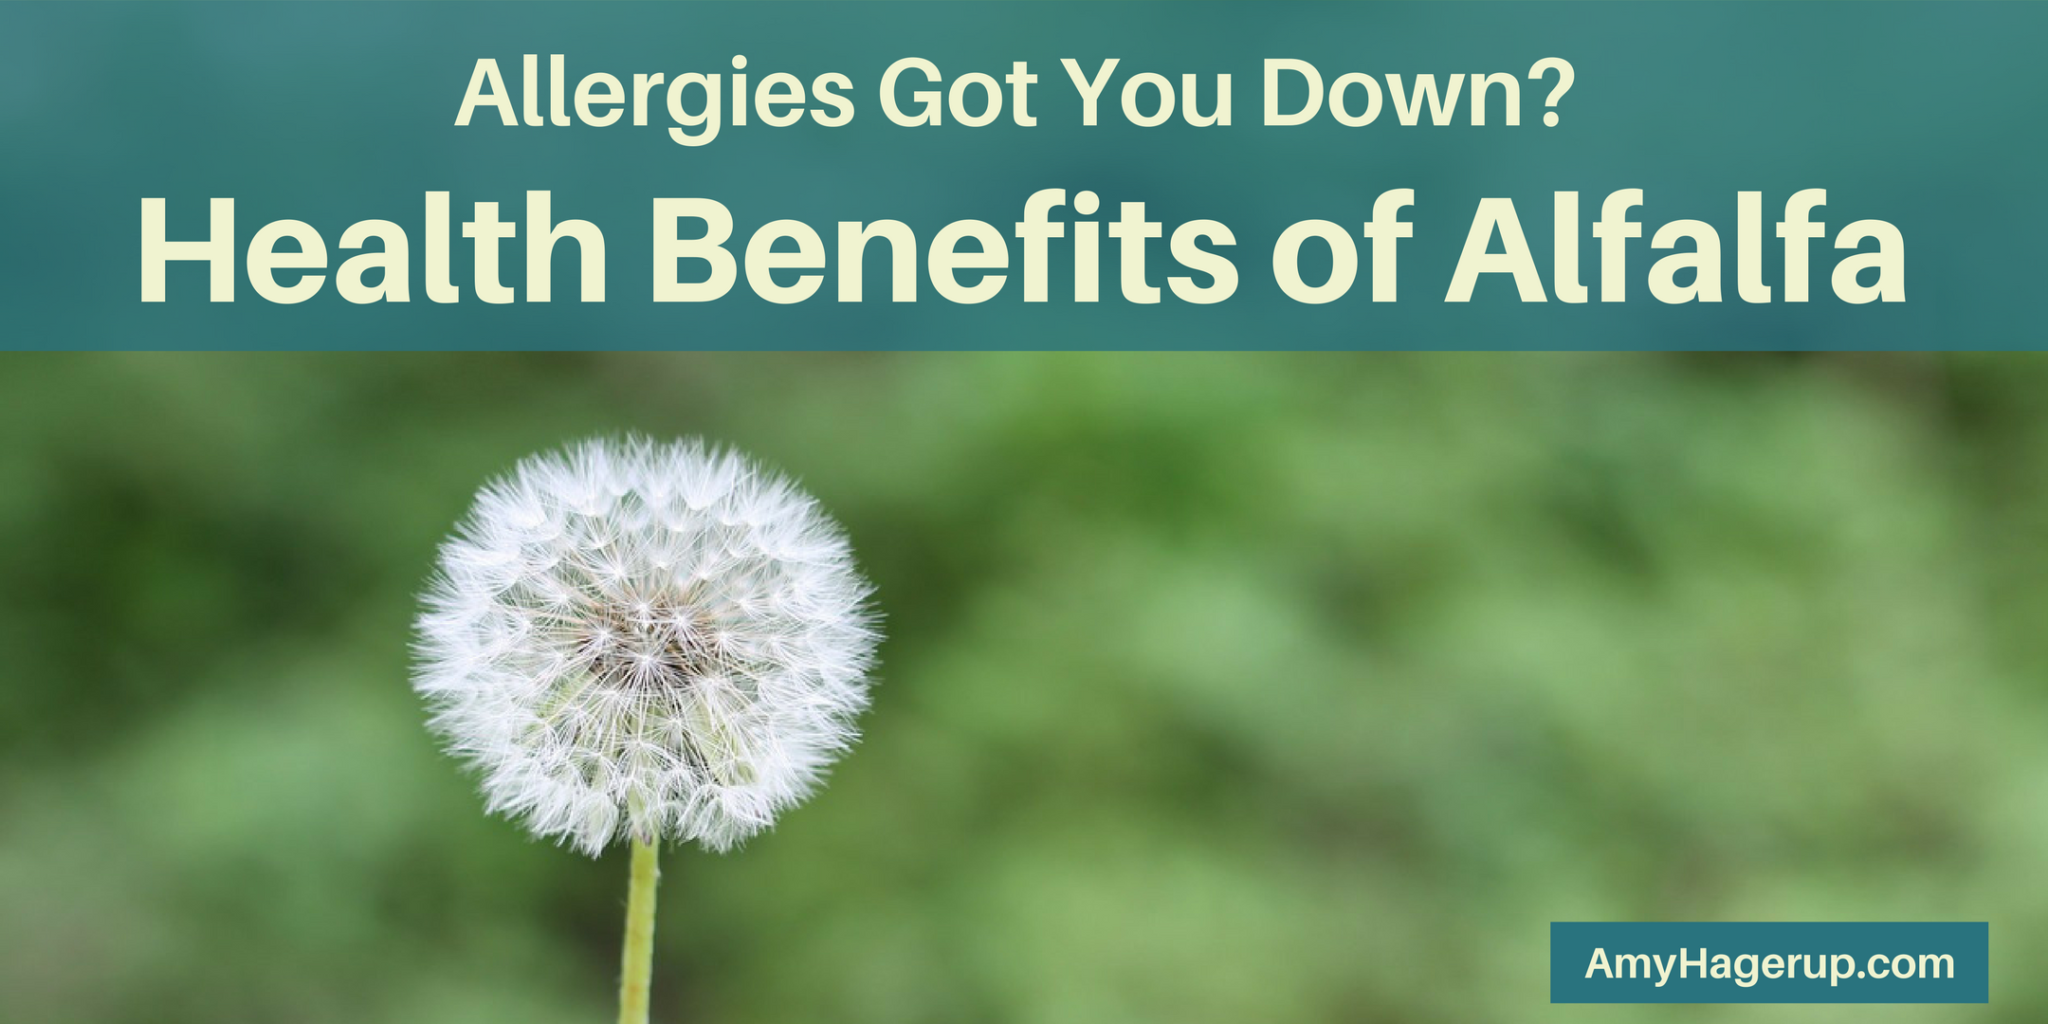 Suffer with allergies? Check out these health benefits of alfalfa.